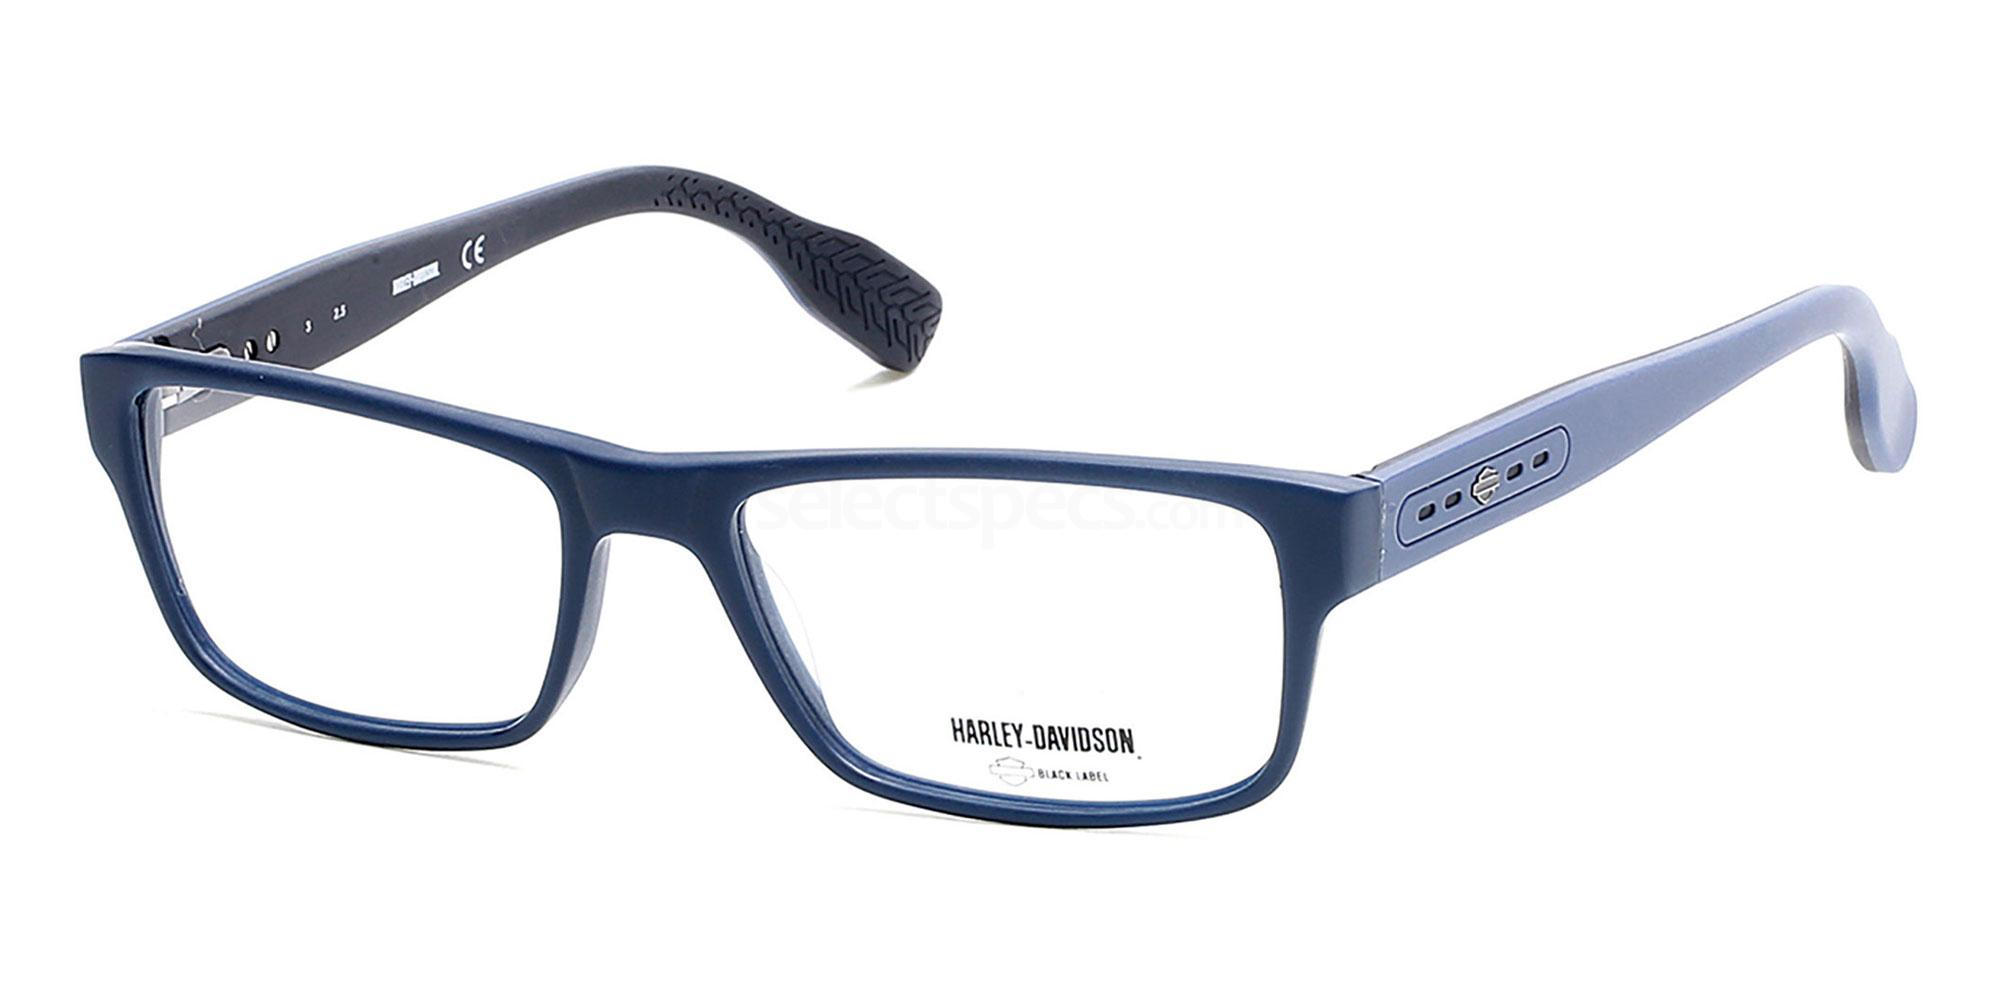 091 HD 1038 Glasses, Harley Davidson